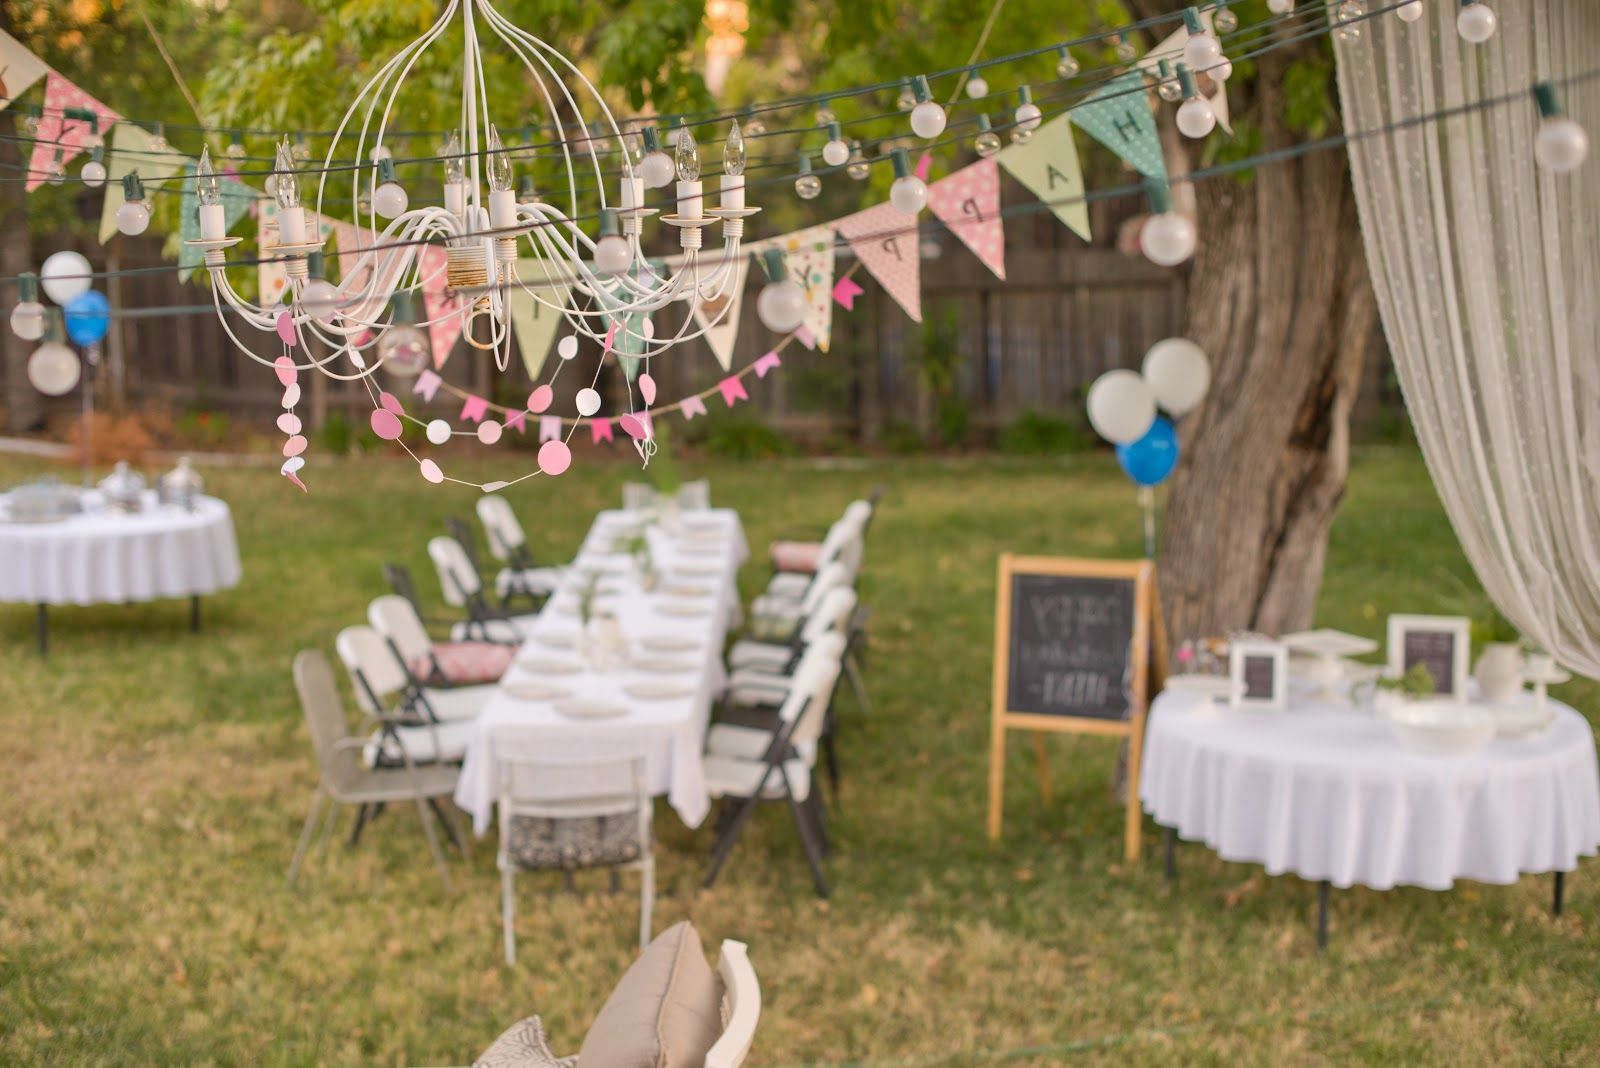 Backyard Birthday Party Decorating Ideas Google Search Party pertaining to Backyard Party Decoration Ideas